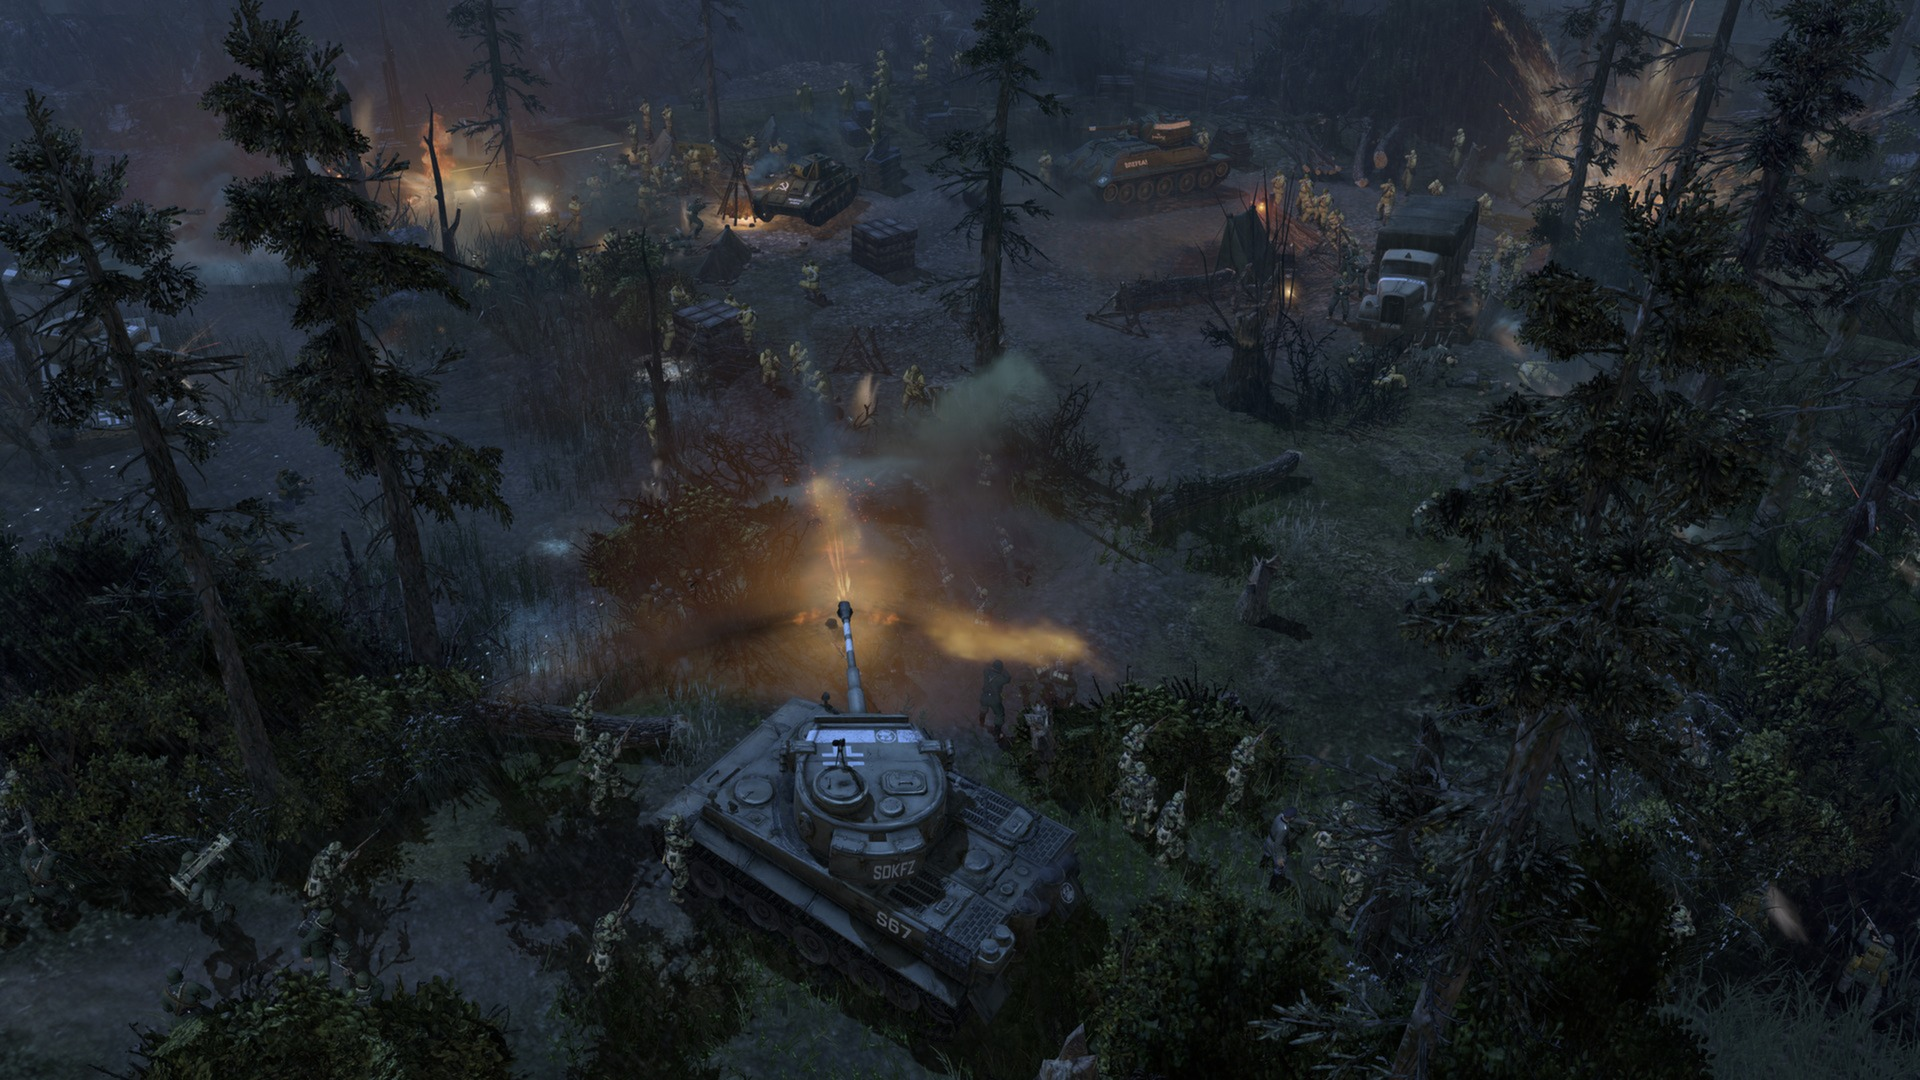 Company of heroes: eastern front on steam.